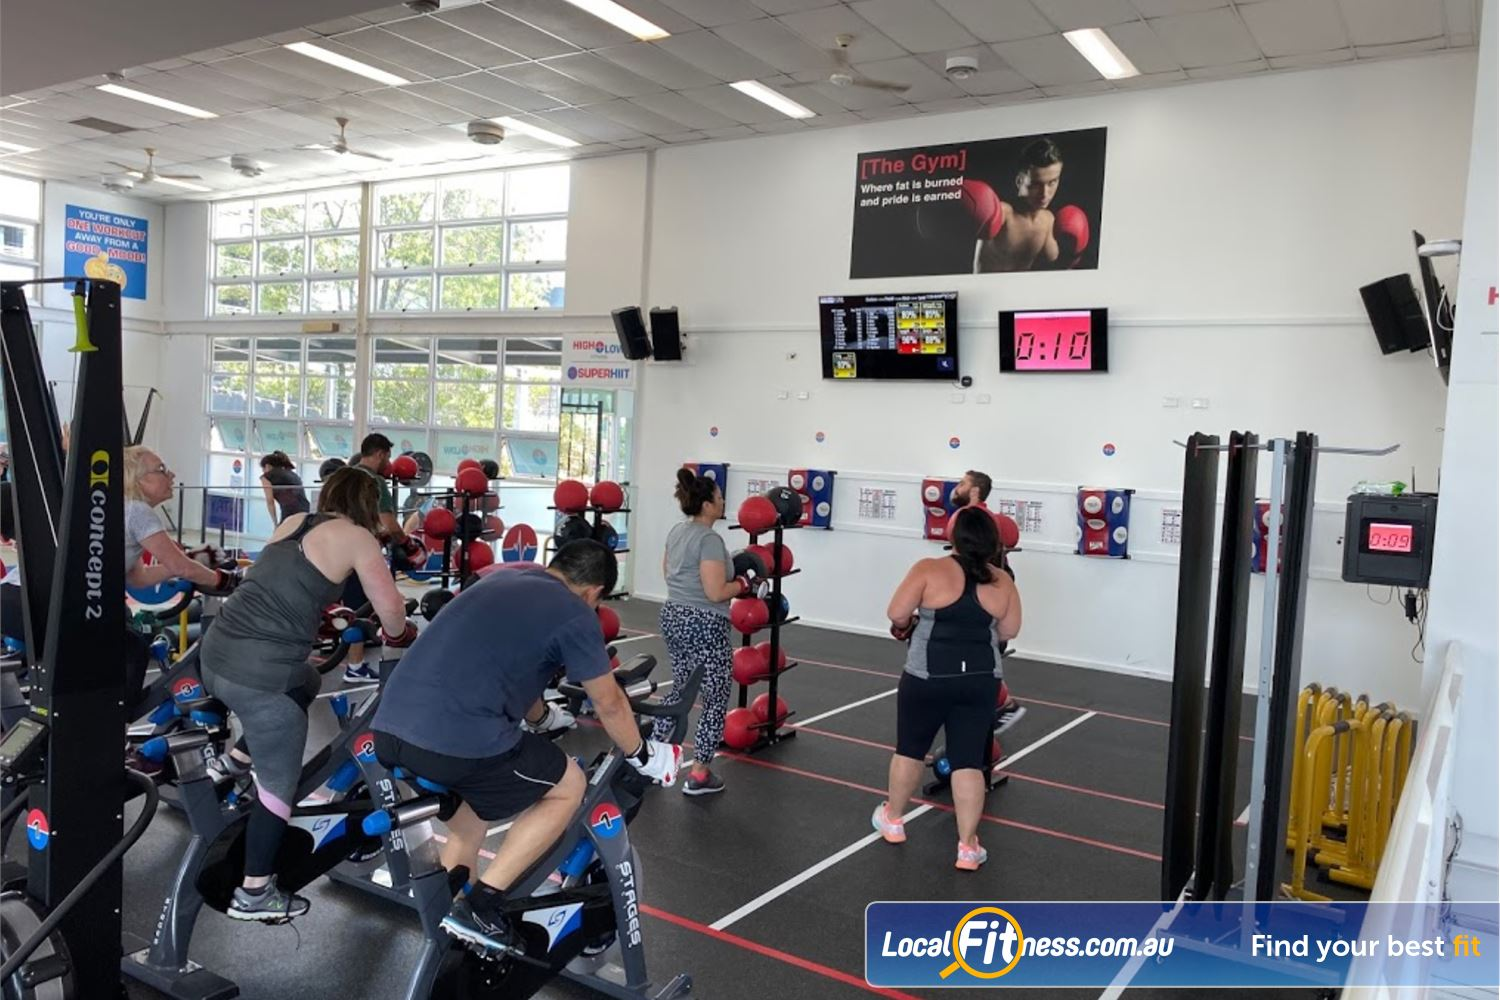 North Ryde Fitness & Aquatic Near Denistone Track your results and watch your progress with MyZone wearable tech.